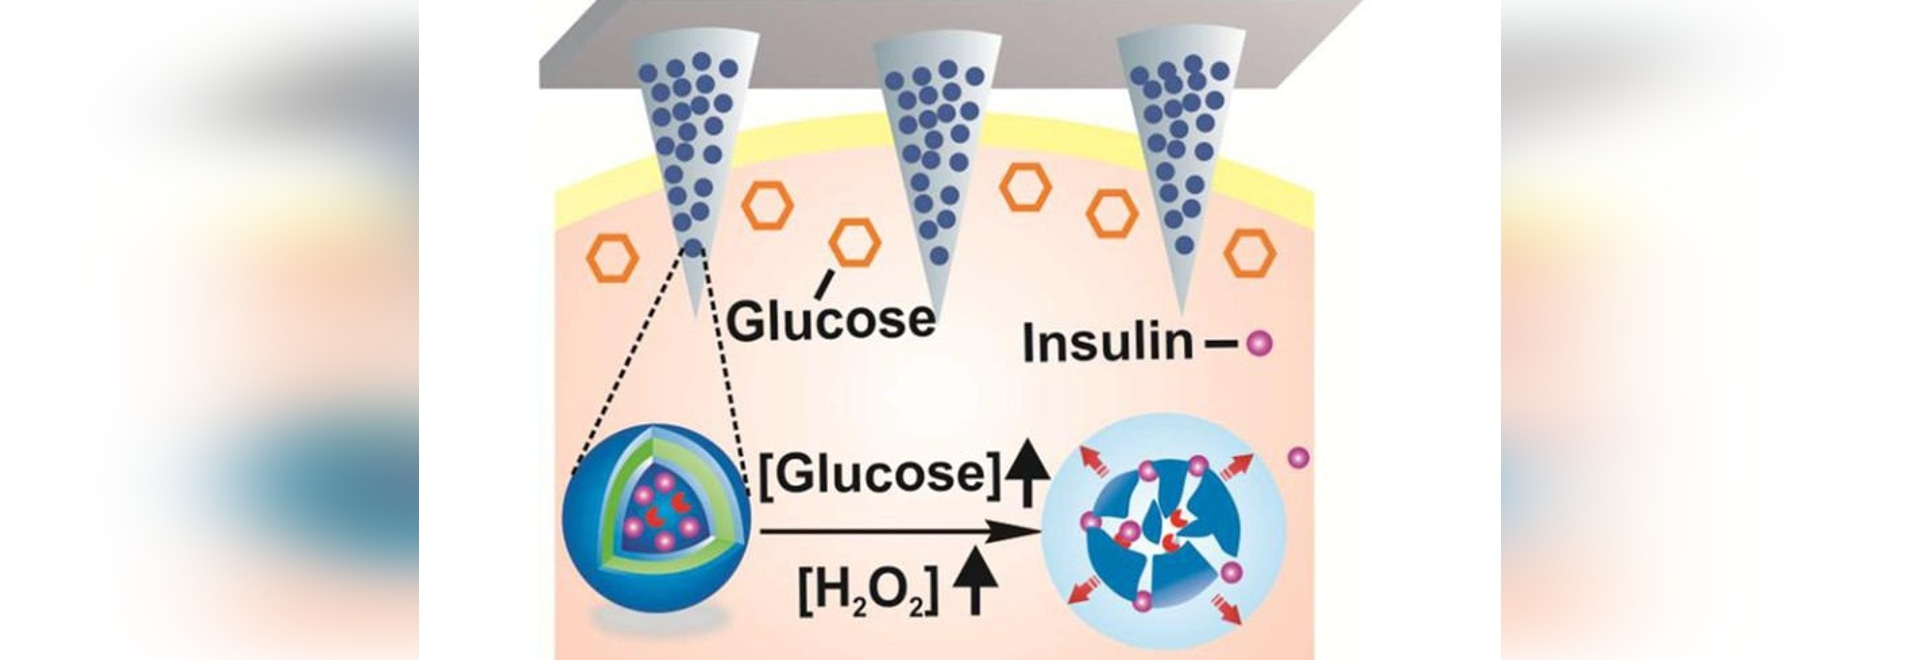 Tiny, painless microneedles on a patch can deliver insulin in response to rising glucose levels (credit: American Chemical Society)